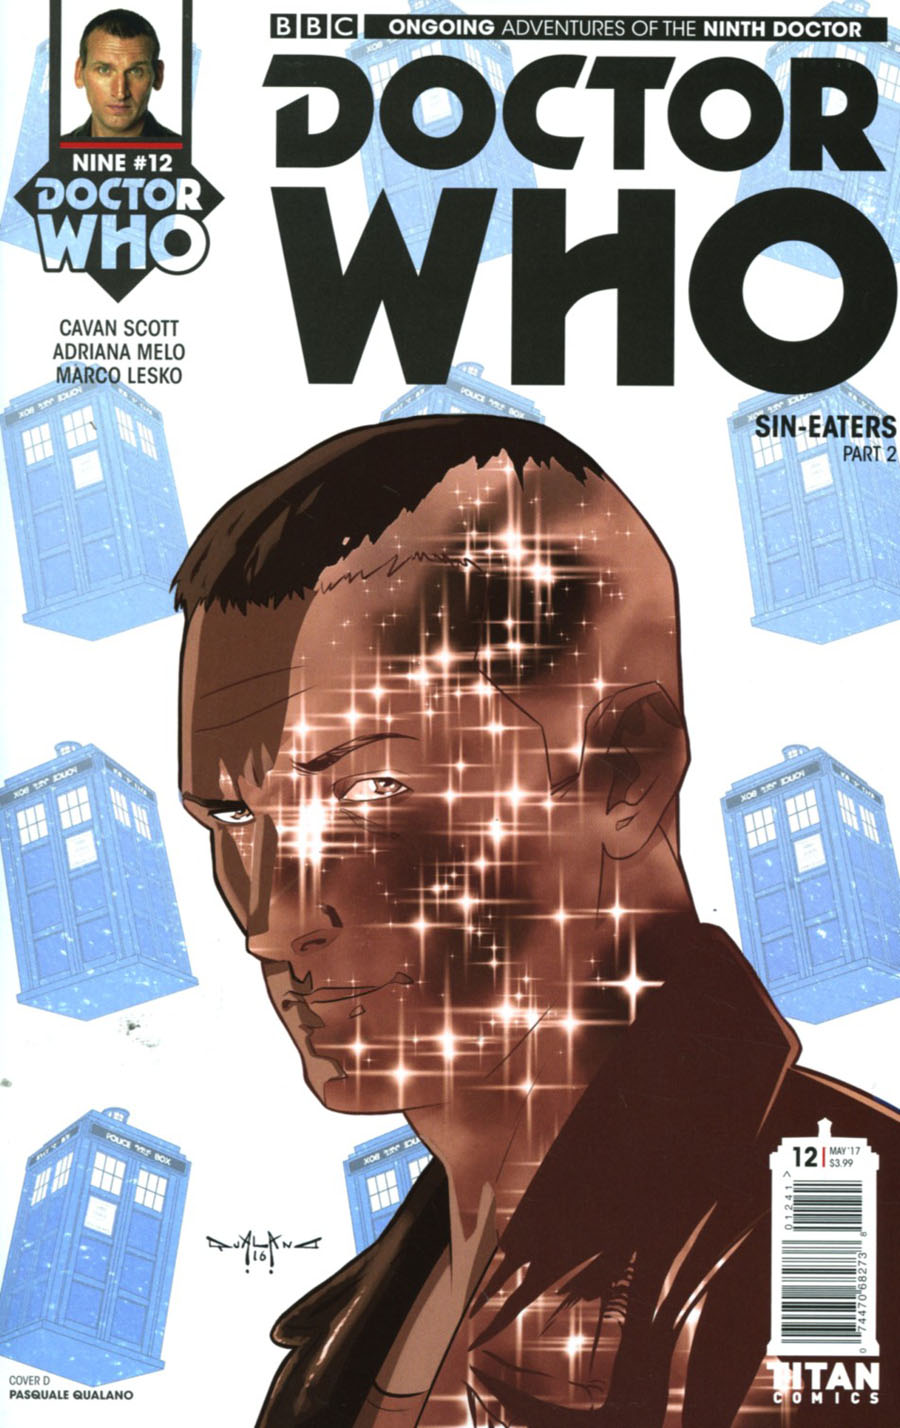 Doctor Who 9th Doctor Vol 2 #12 Cover D Variant Pasquale Qualano Cover